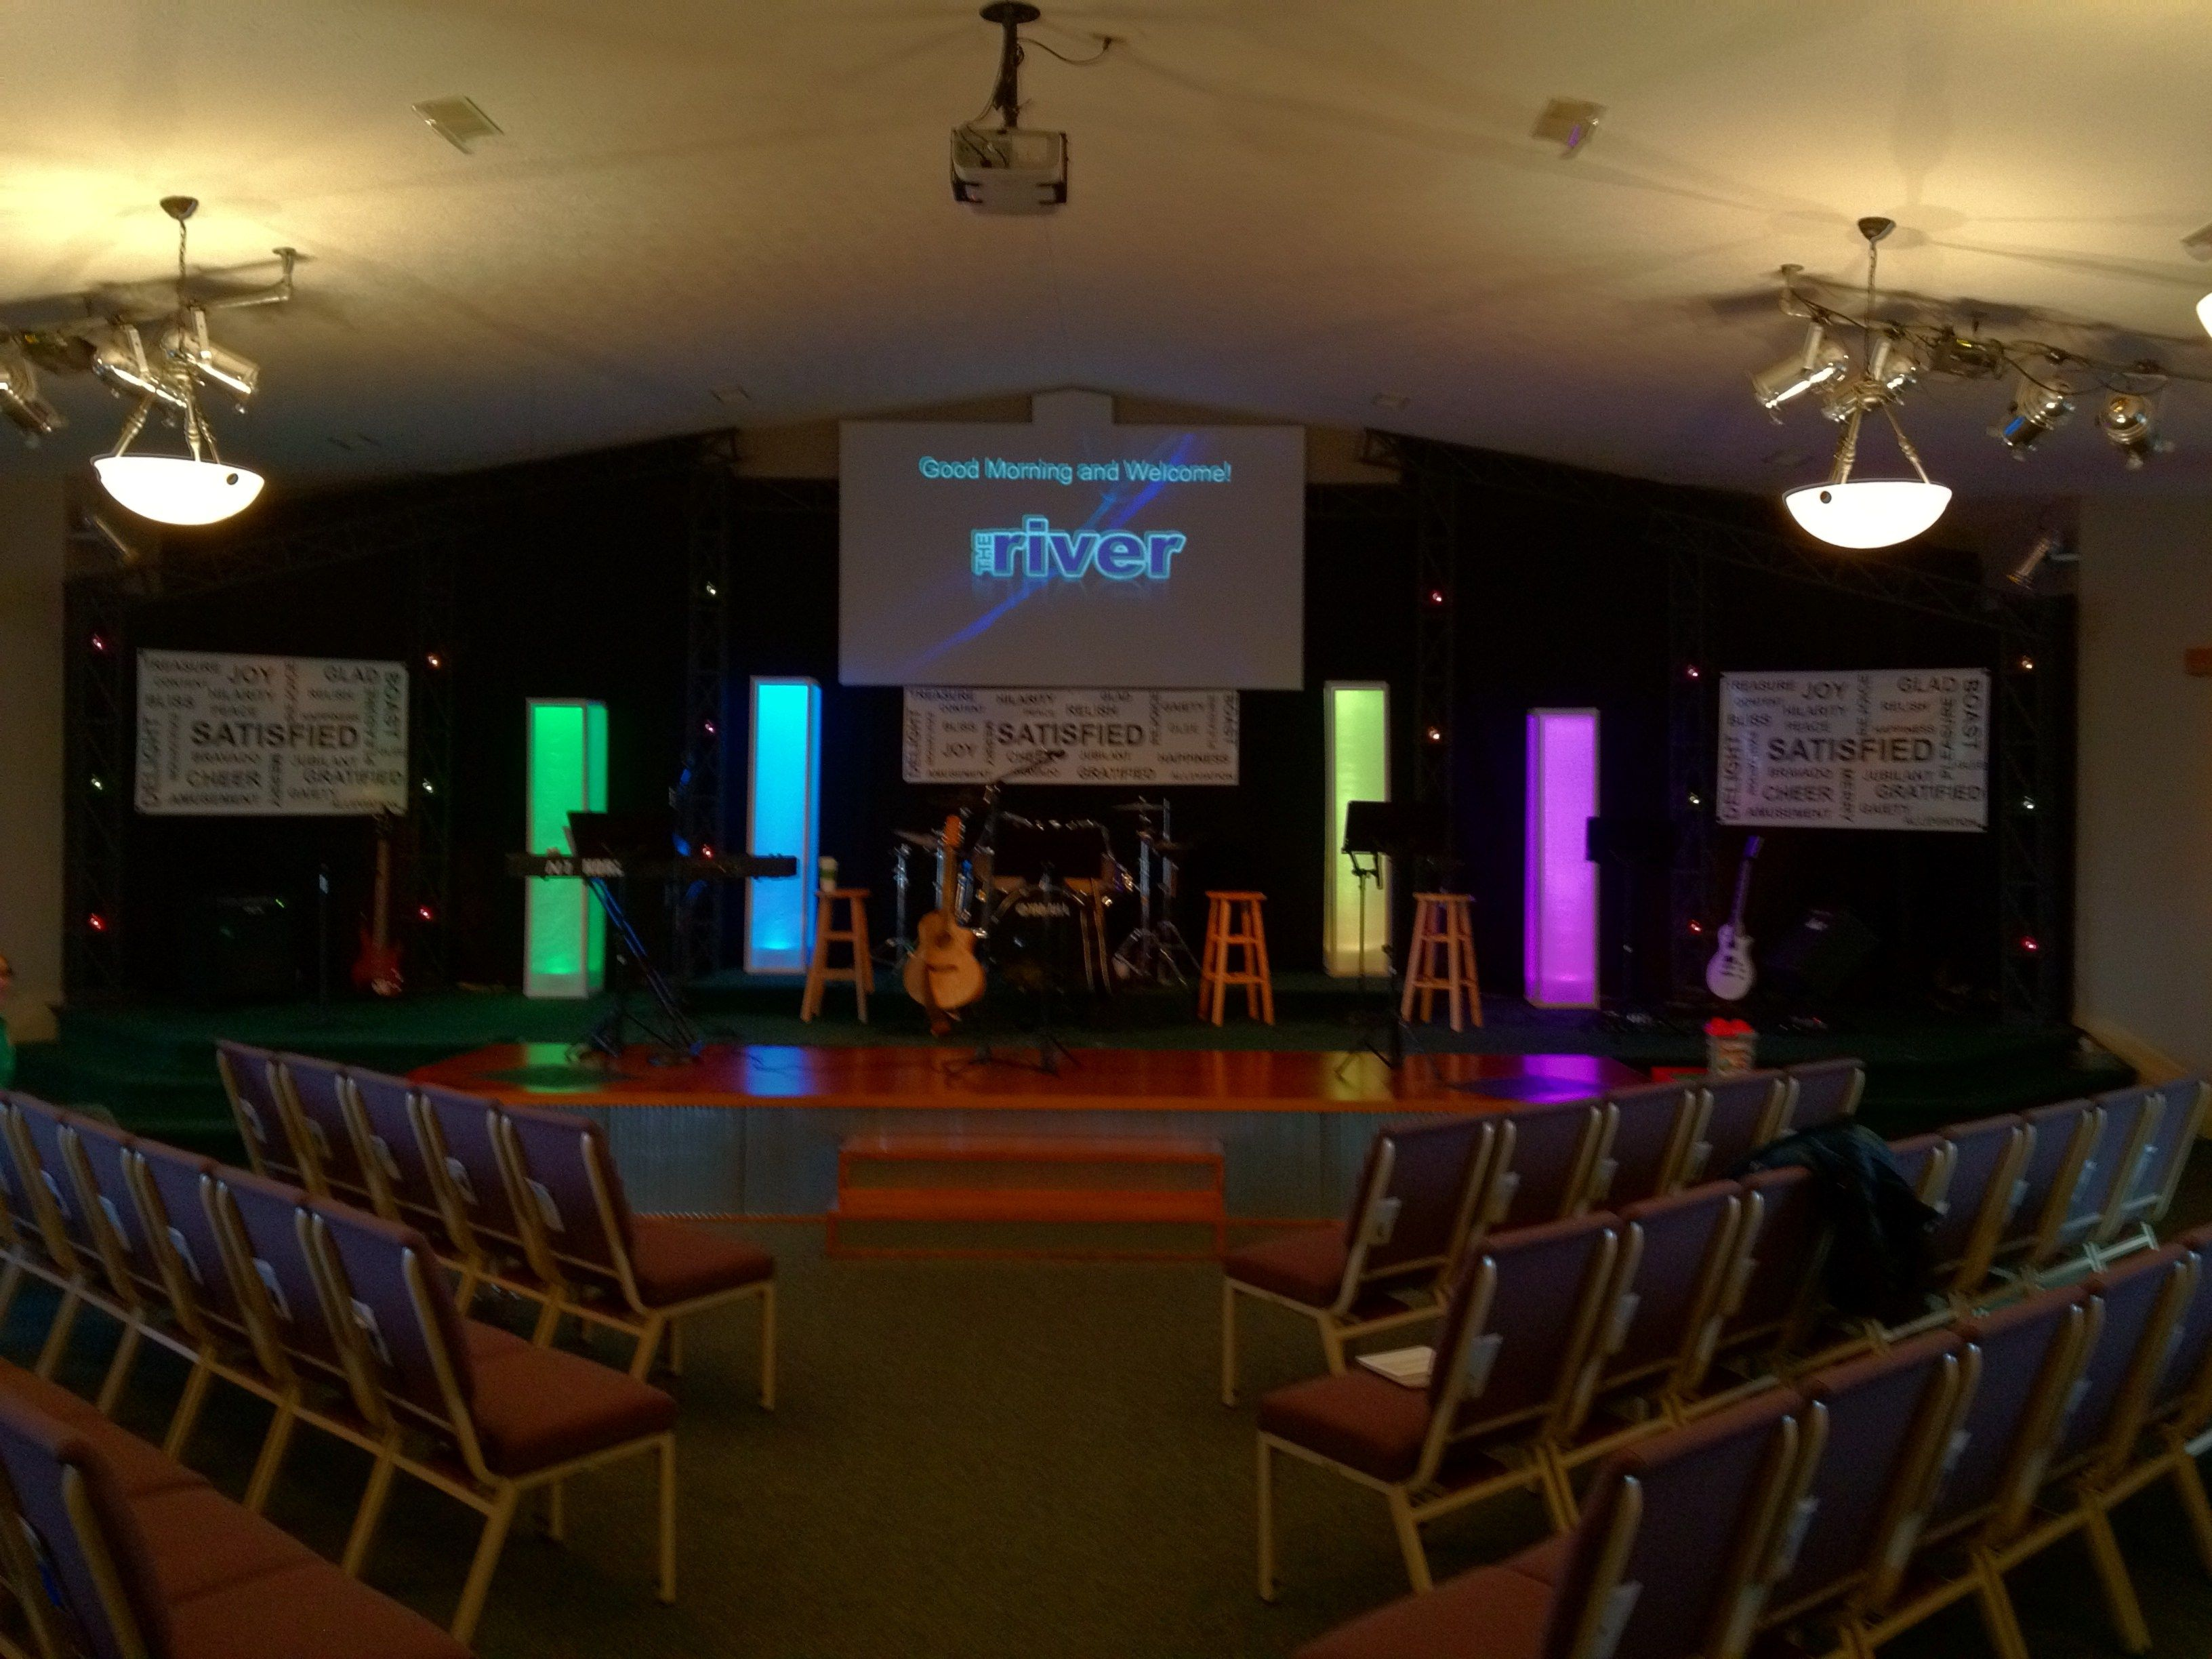 this is how you can put together light boxes for your church on a budget